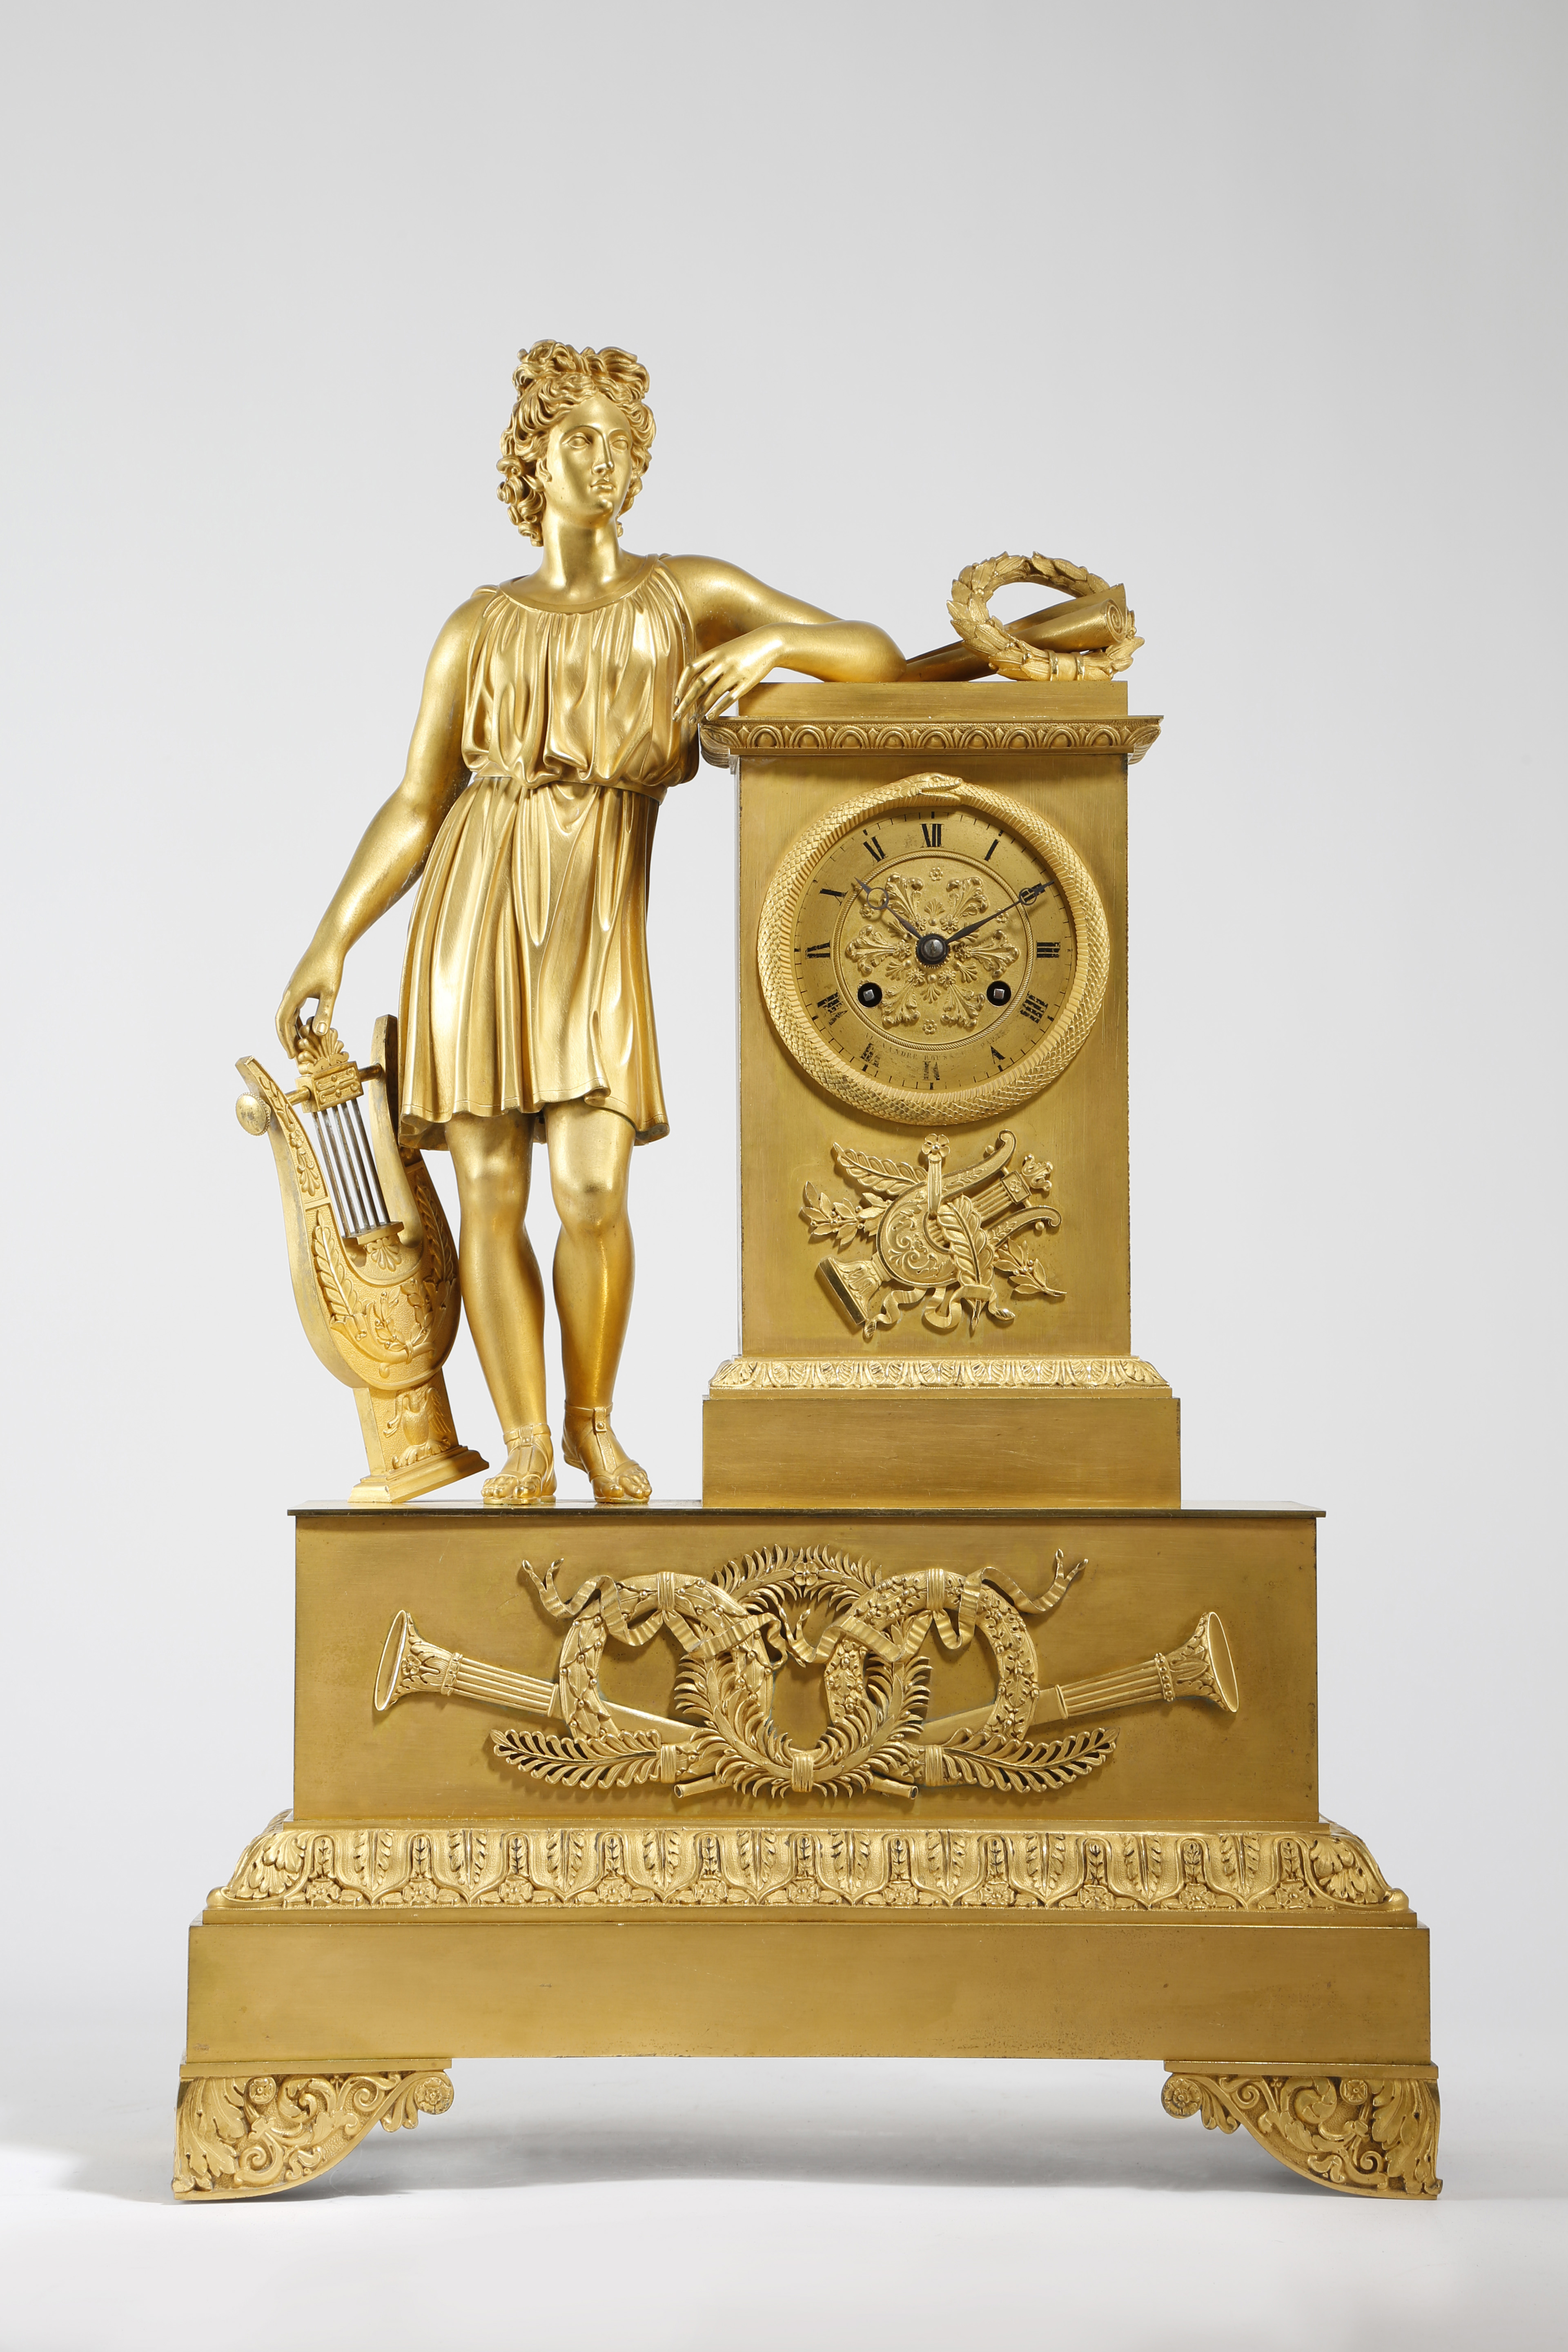 A FRENCH EMPIRE ORMOLU FIGURAL MANTEL CLOCK BY ALEXANDRE ROUSSEL